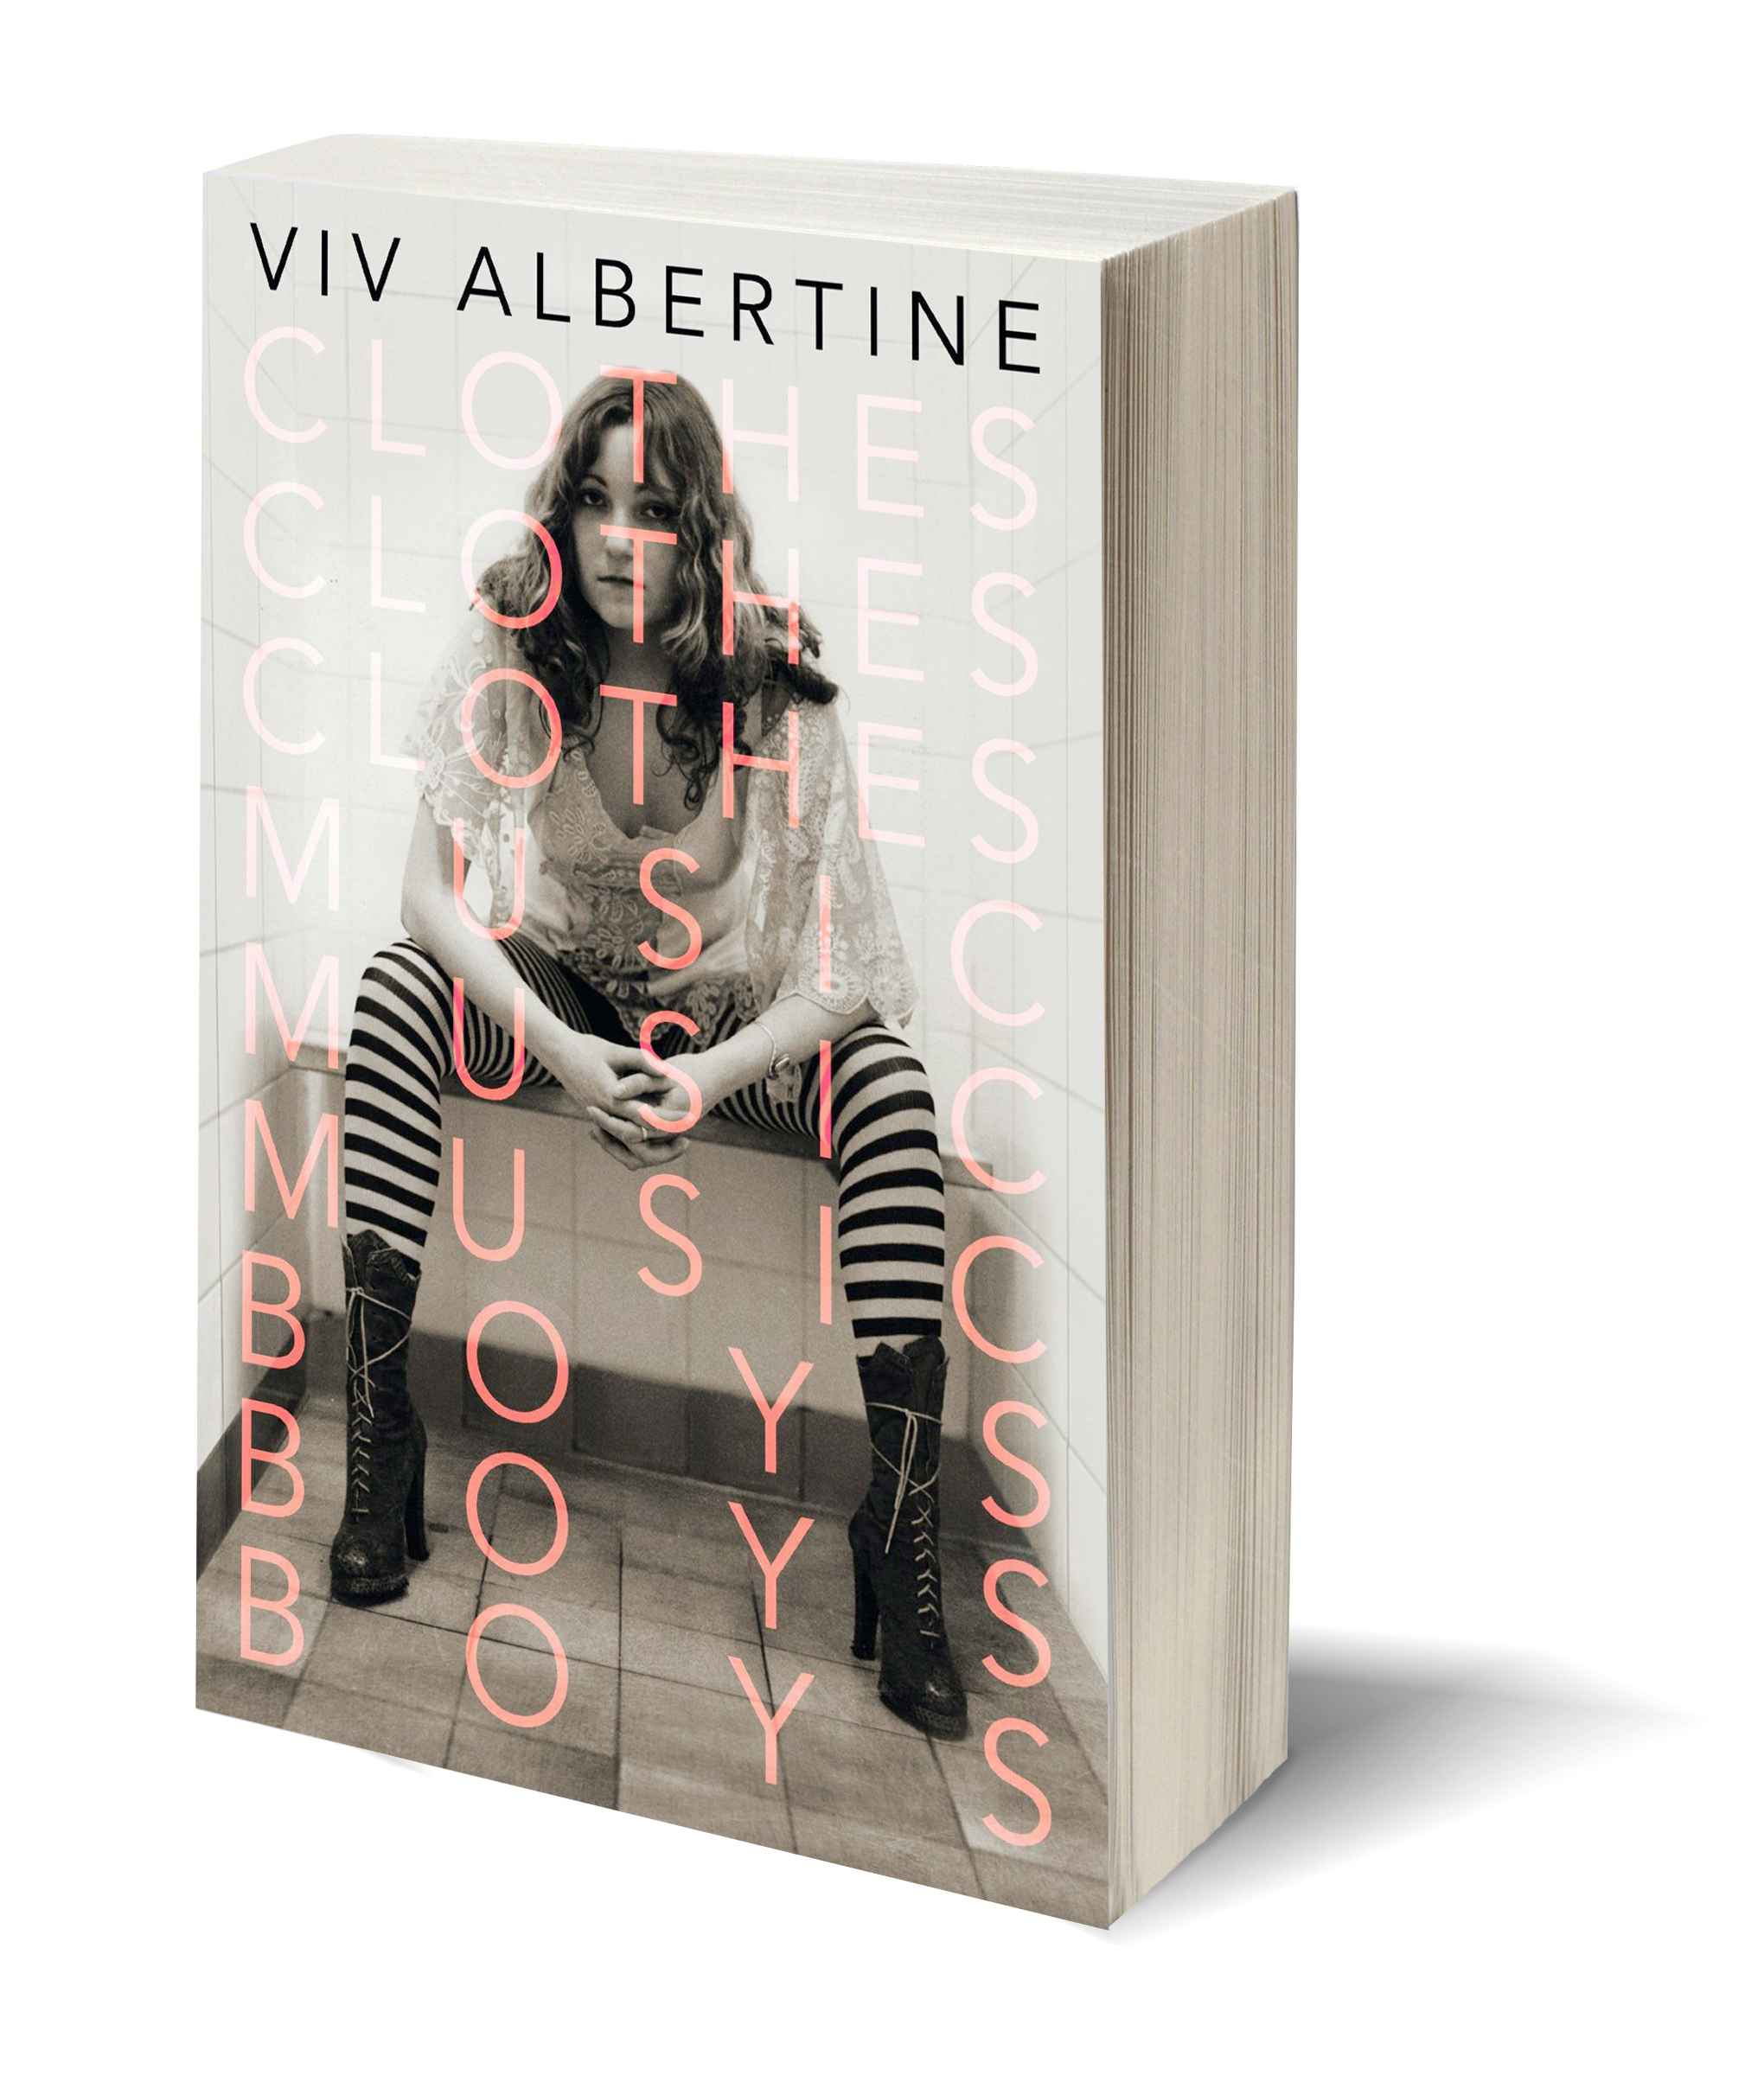 MOJO's Book of the Year, Viv Albertine's Clothes Clothes Clothes Music Music Music Boys Boys Boys.